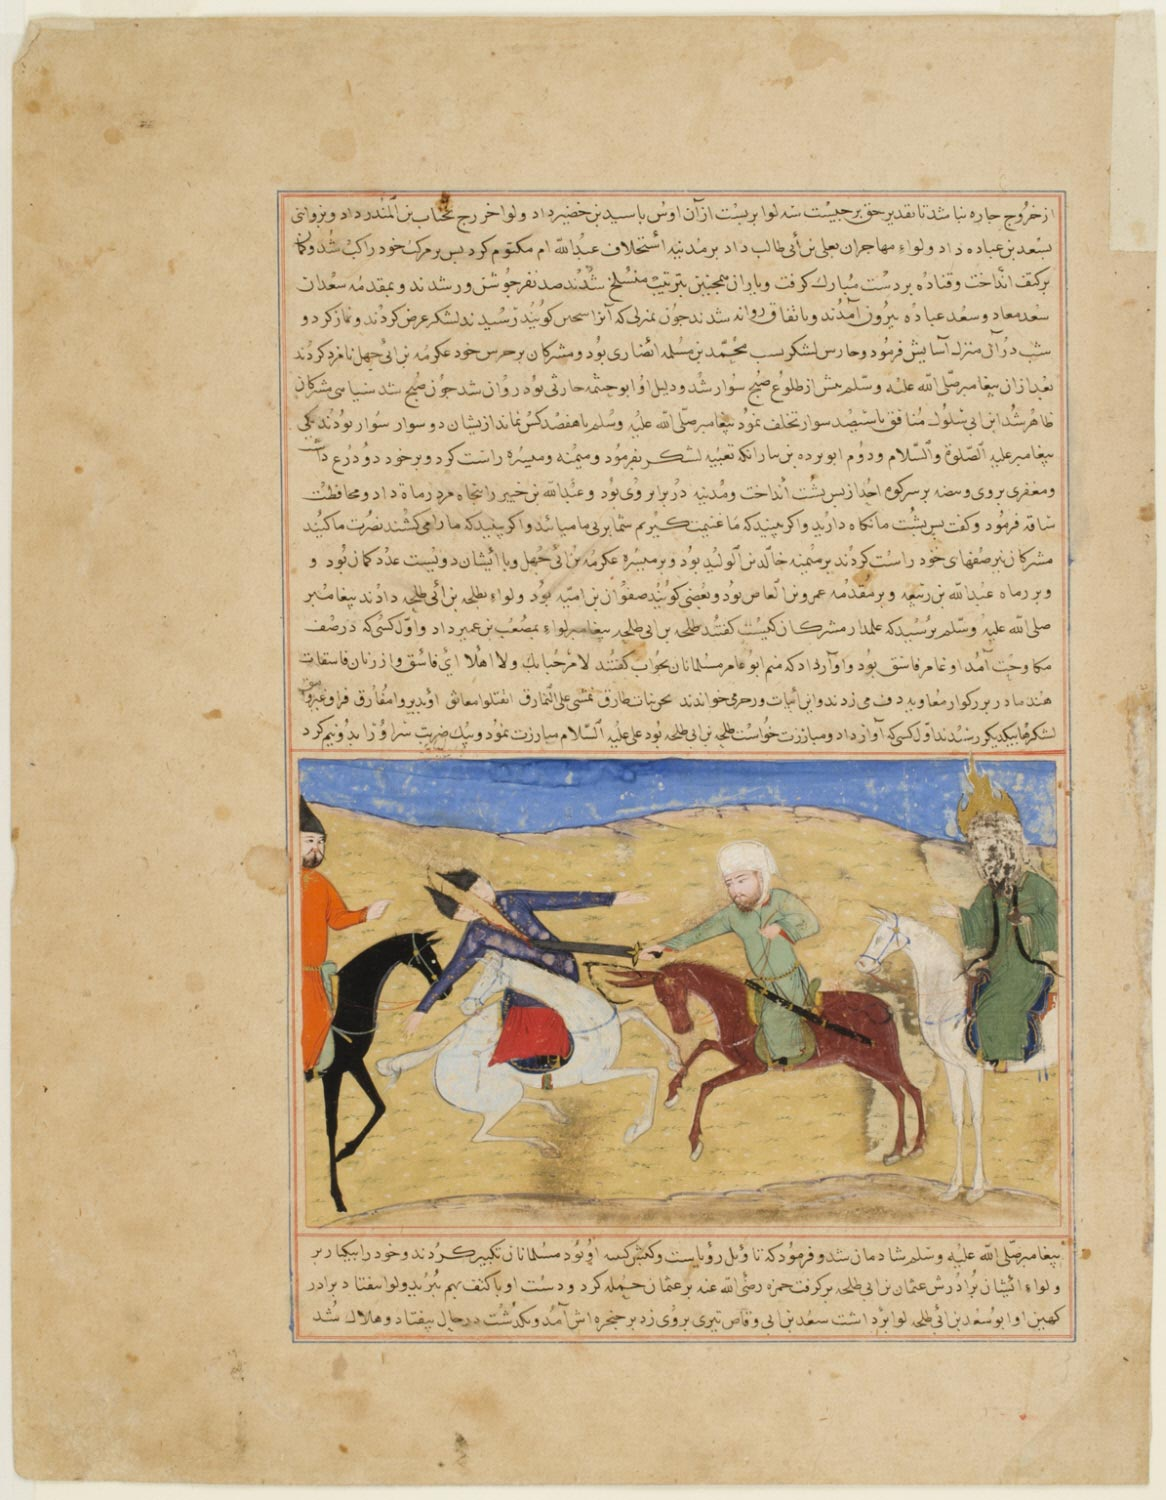 'Ali striking down the Meccan standard-bearer, Talhah ibn Abi Talhah al-'Abdari, in a single blow at the battle of 'Uhud on March 19, 625 C.E.